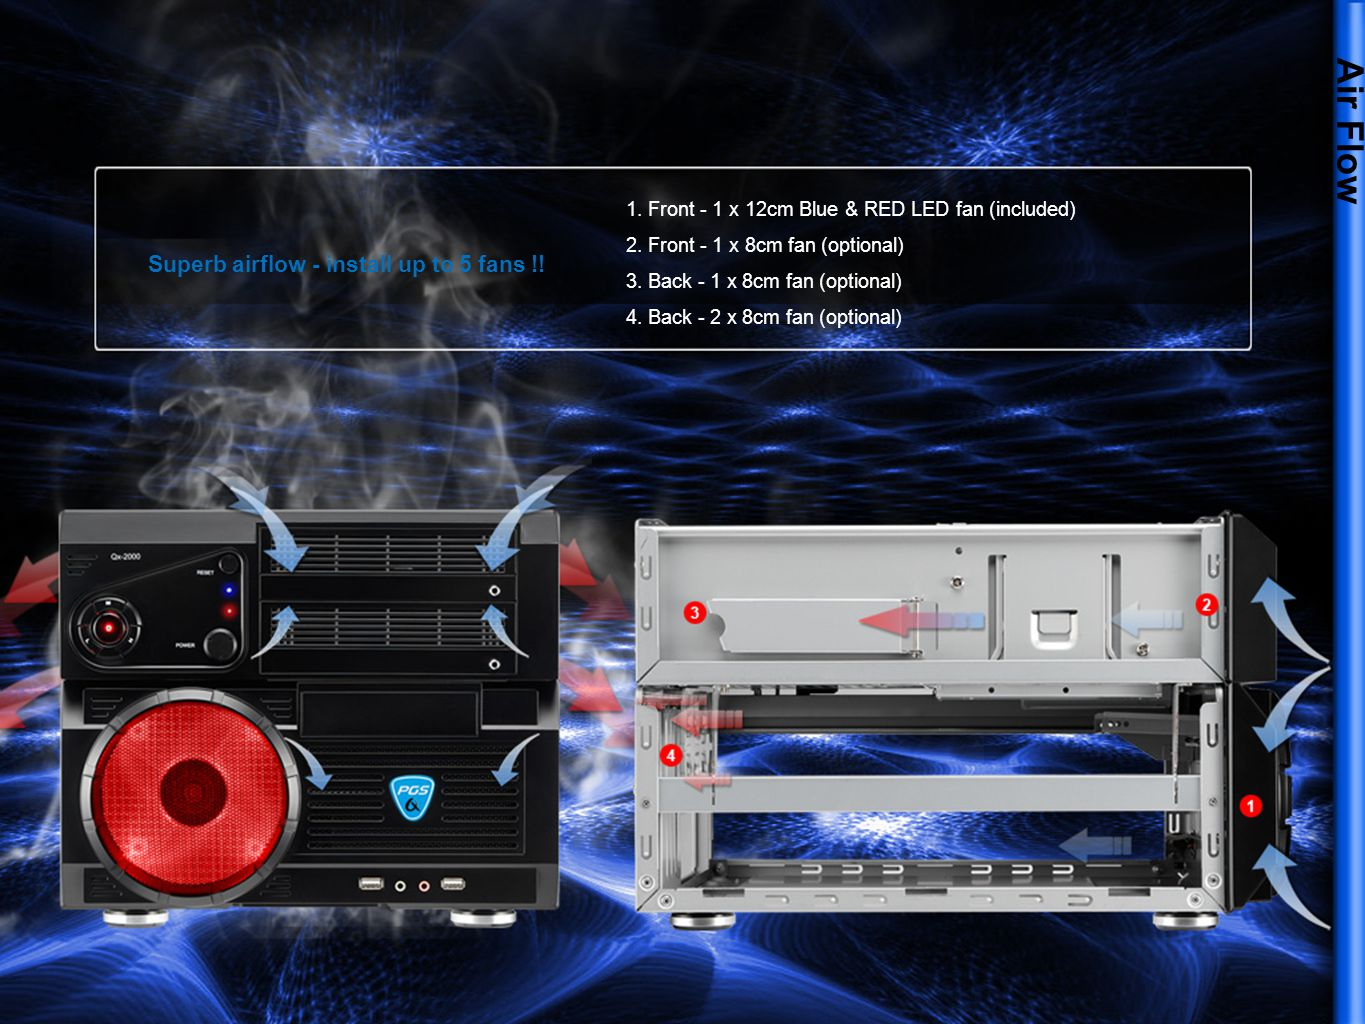 Air Flow Superb airflow - install up to 5 fans !! 1. Front - 1 x 12cm Blue & RED LED fan (included) 2. Front - 1 x 8cm fan (optional) 3. Back - 1 x 8c